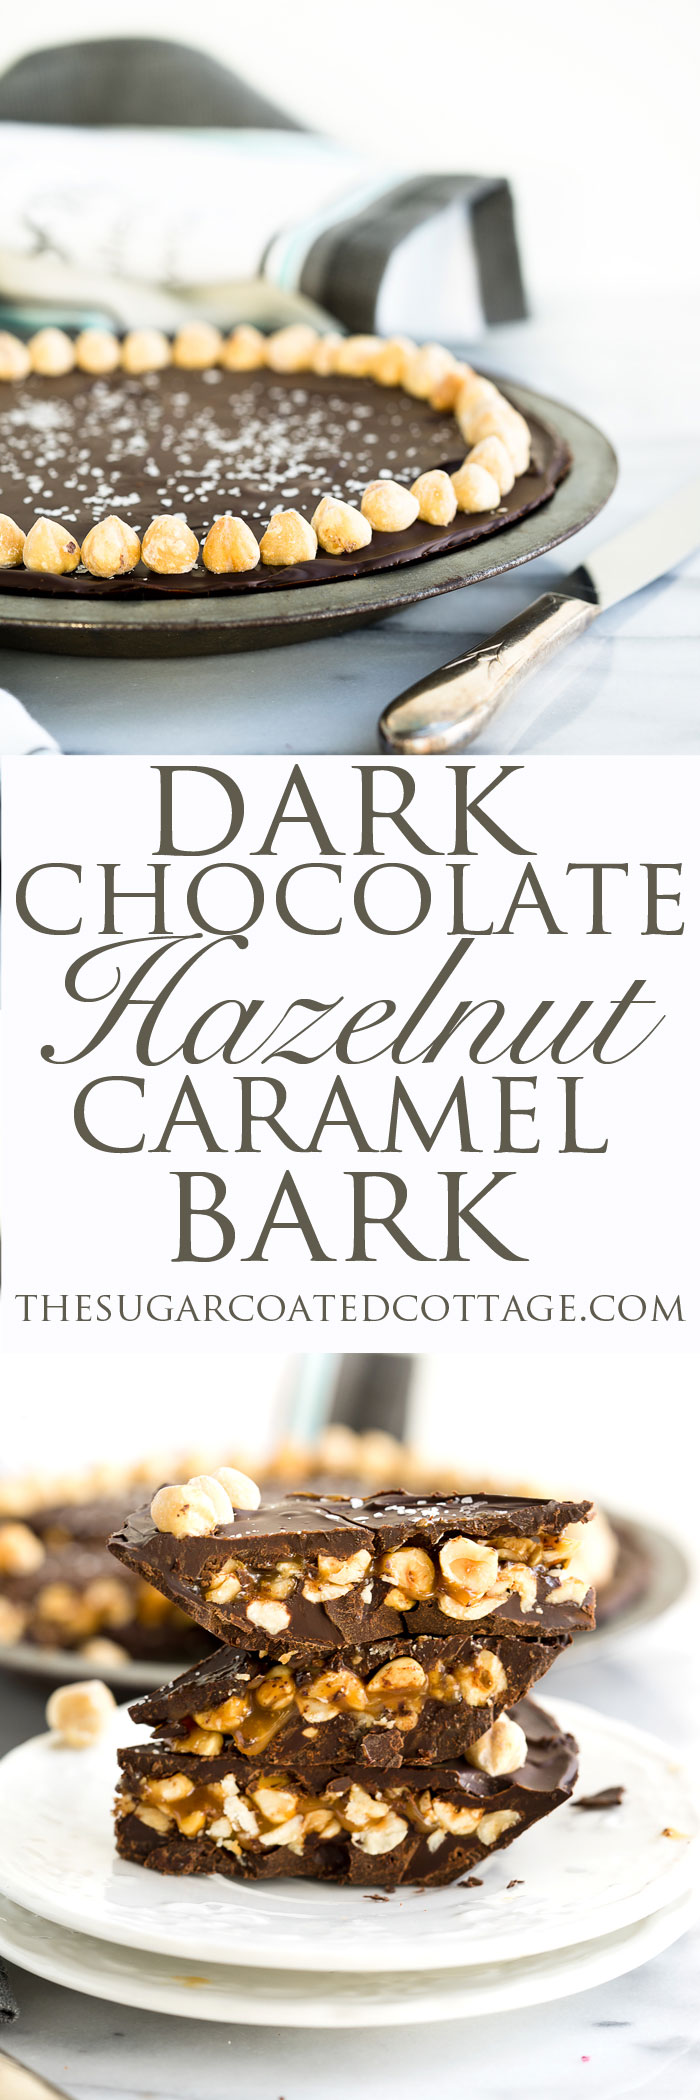 Gooey Dark Chocolate Roasted Hazelnut Caramel Bark Recipe. Smooth dark chocolate, roasted hazelnuts, gooey caramel and a sprinkling of sea salt make for your new favorite bark recipe. | thesugarcoatedcottage.com